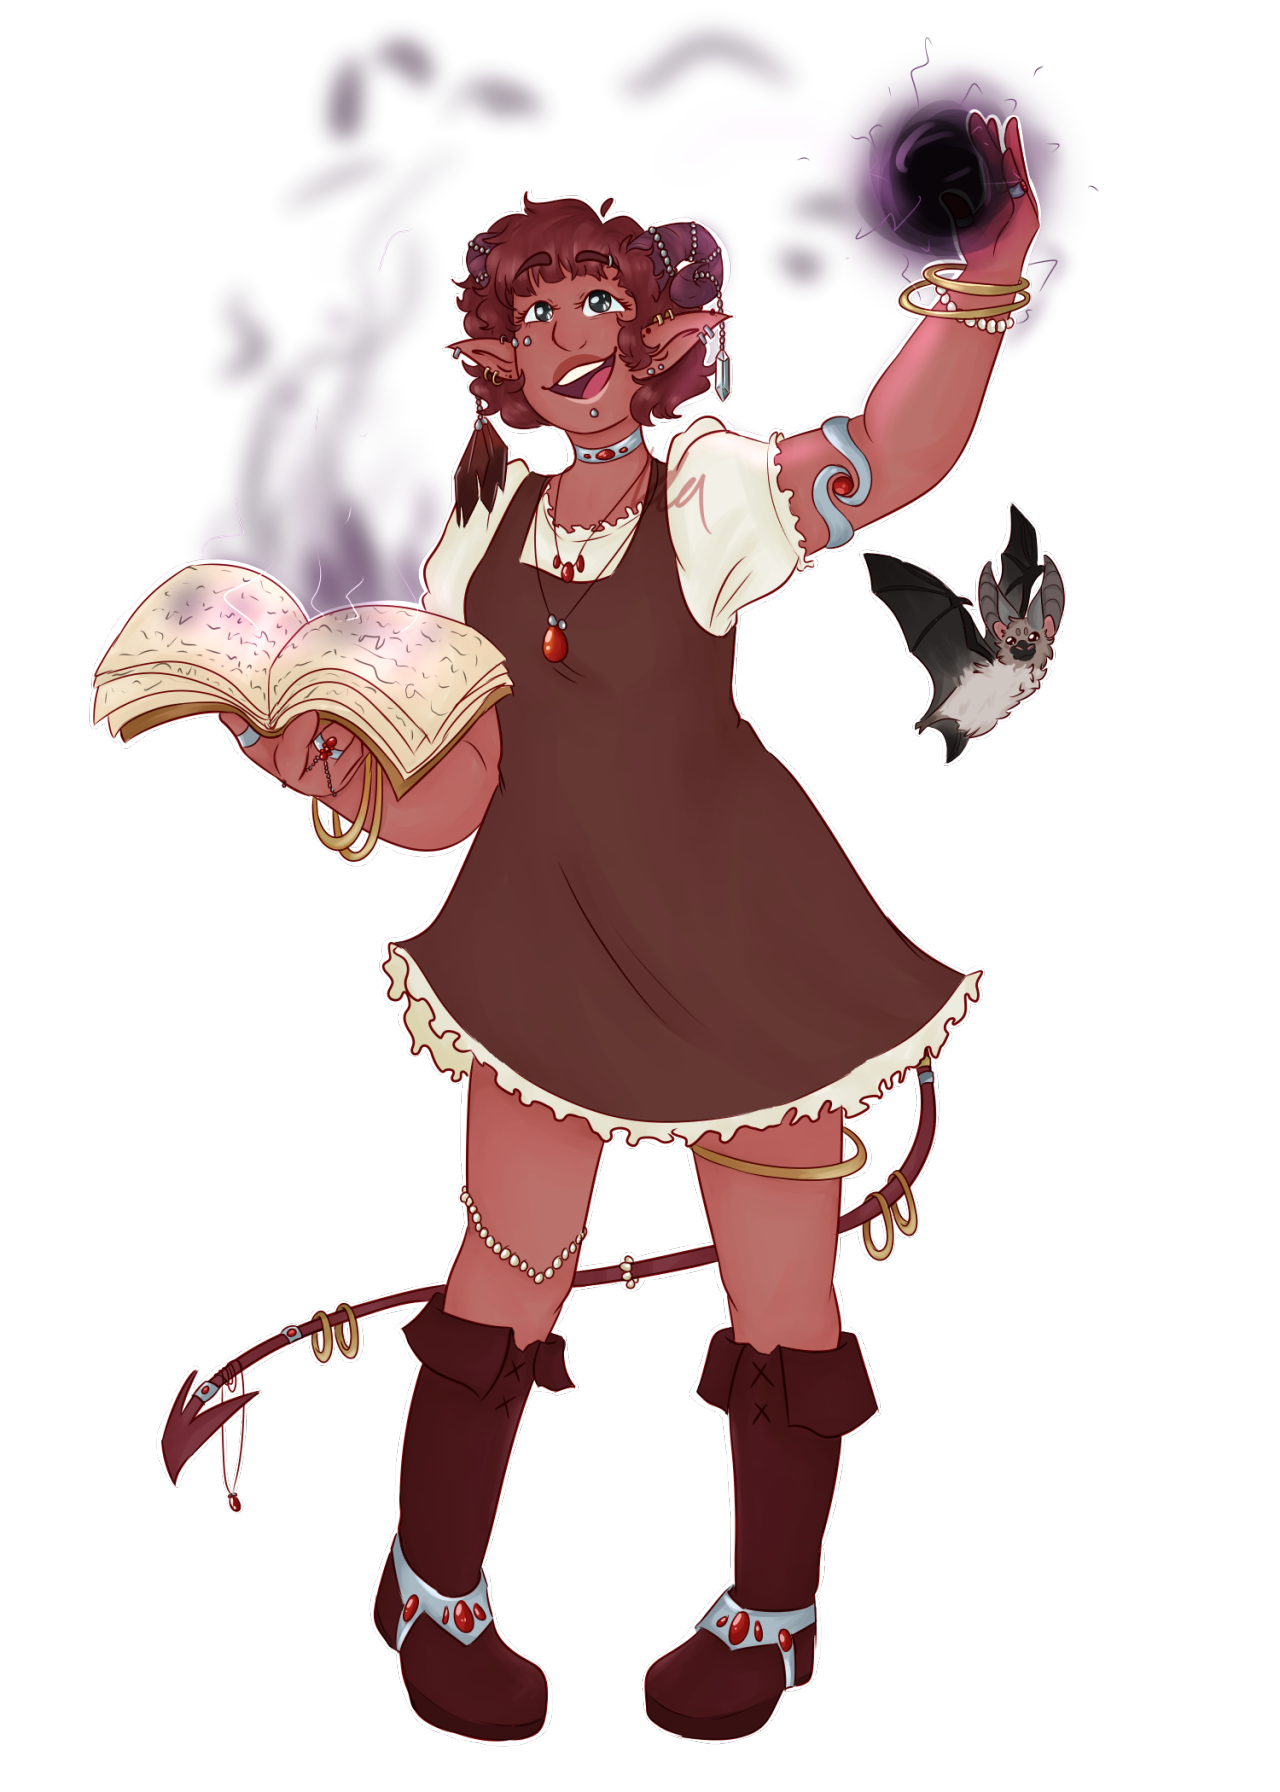 Necromancer drawing warforged. Oc adorable tiefling and